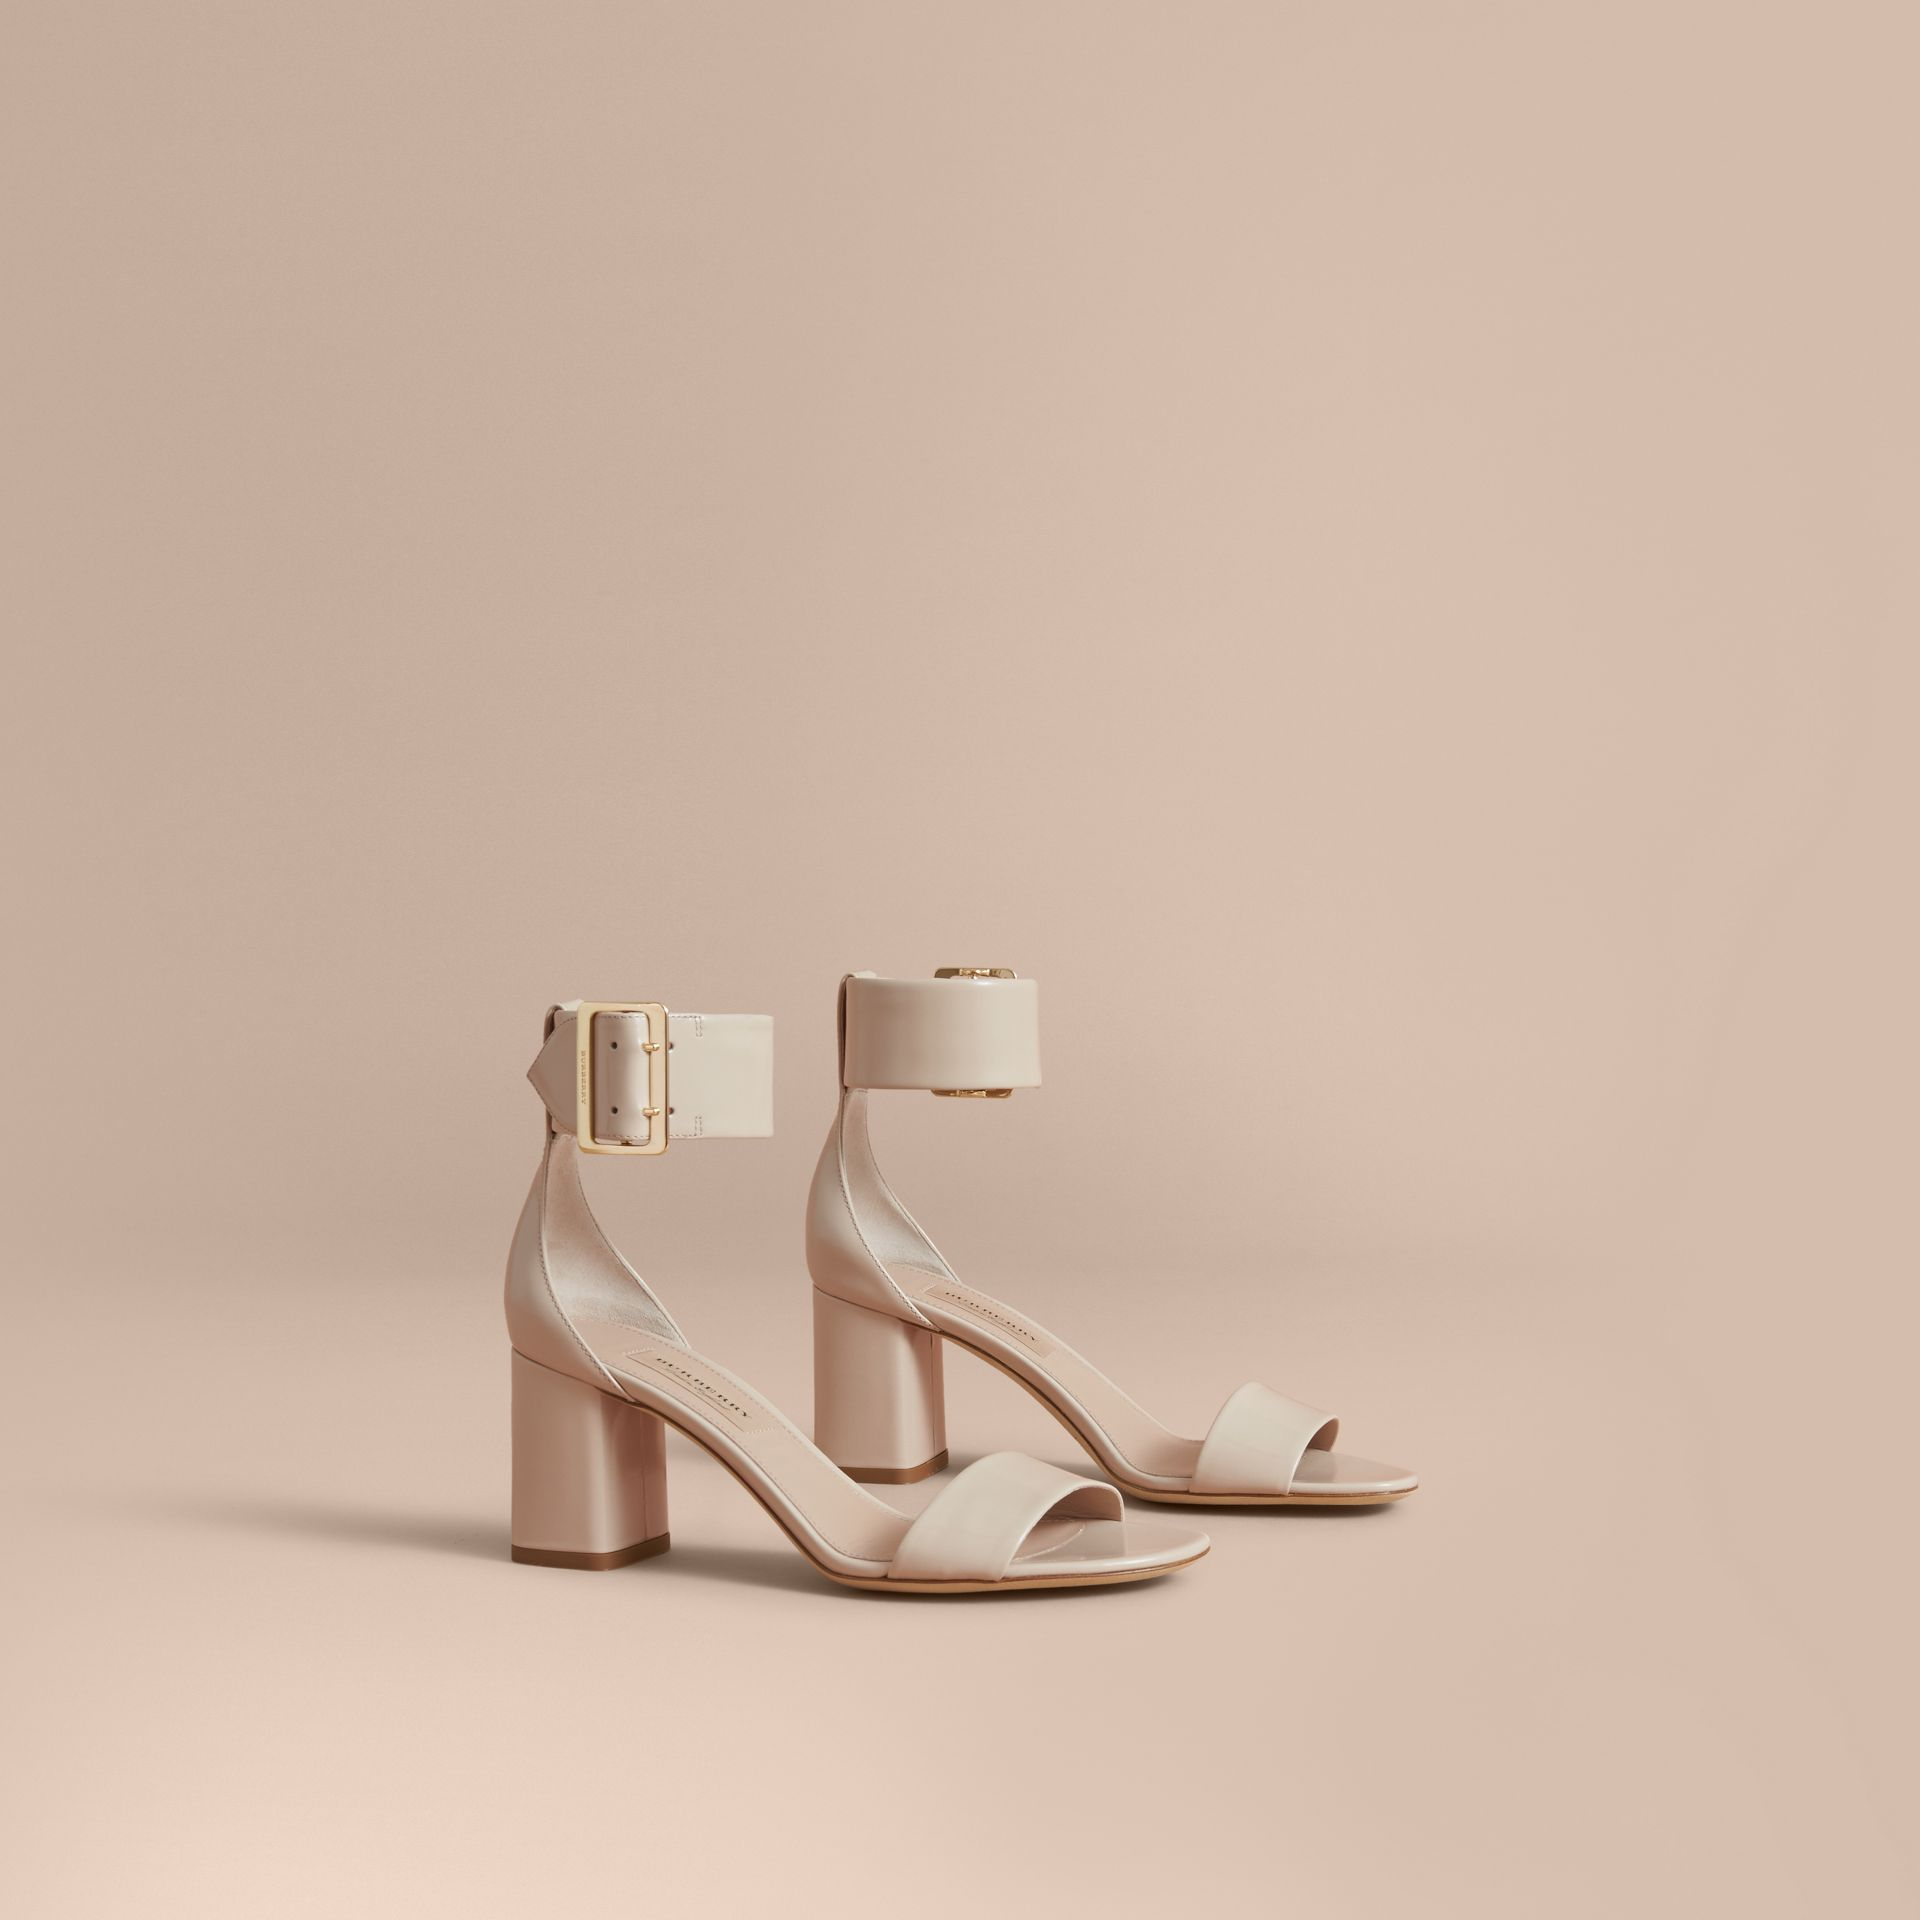 Buckle Detail Patent Leather Sandals in Pale Taupe - Women | Burberry Canada - gallery image 1